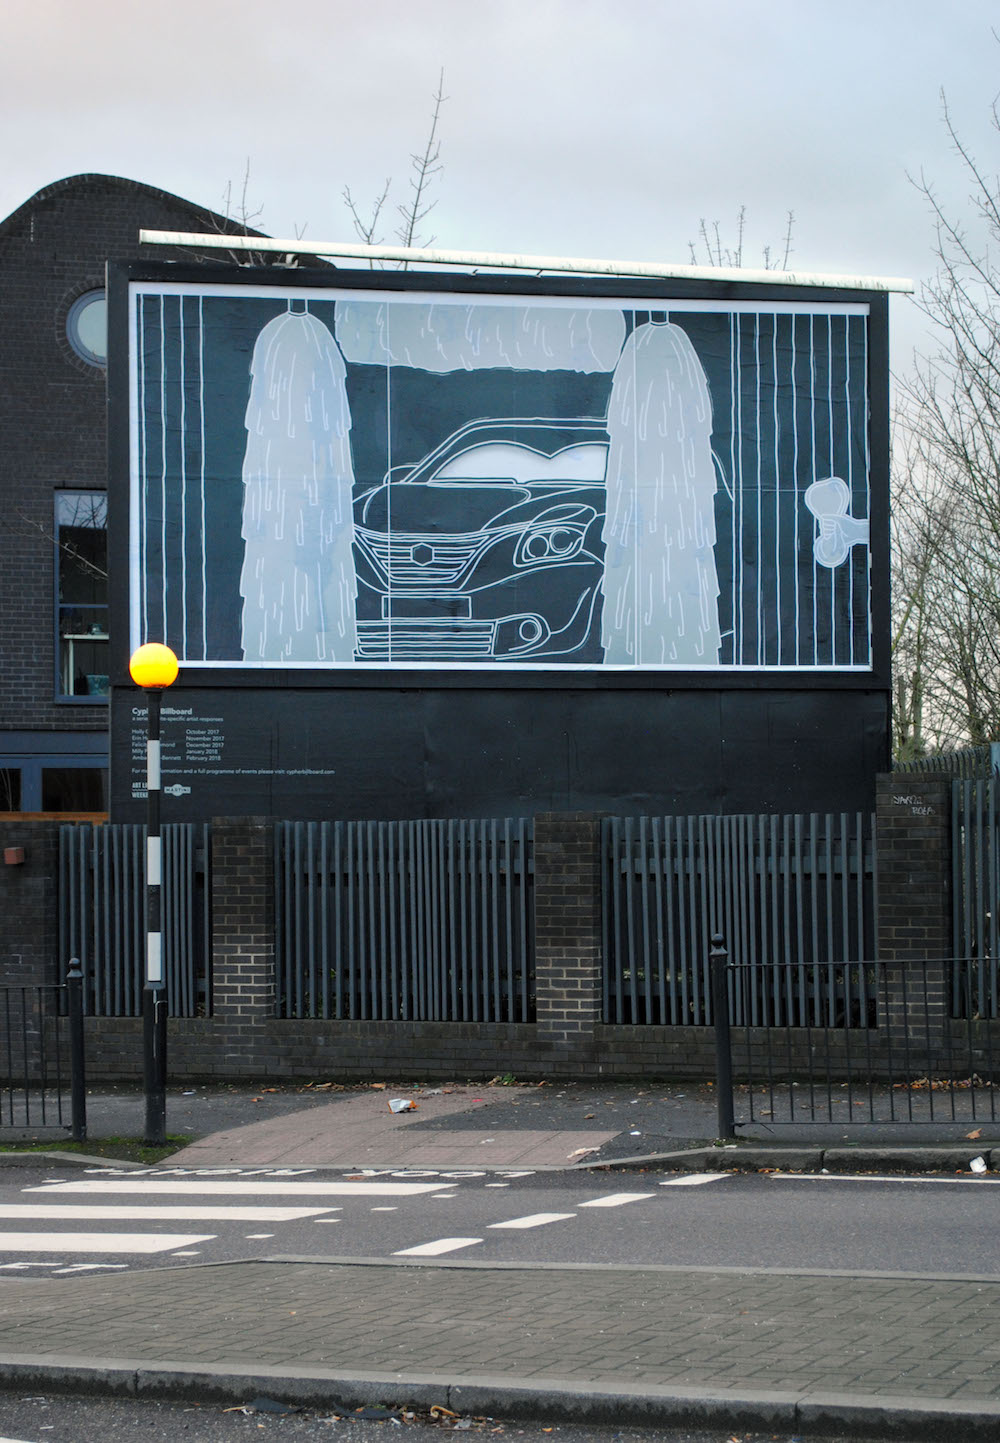 Milly Peck, Rinse and Repeat, 2018. Installation view. Cypher Billboard, London, UK.